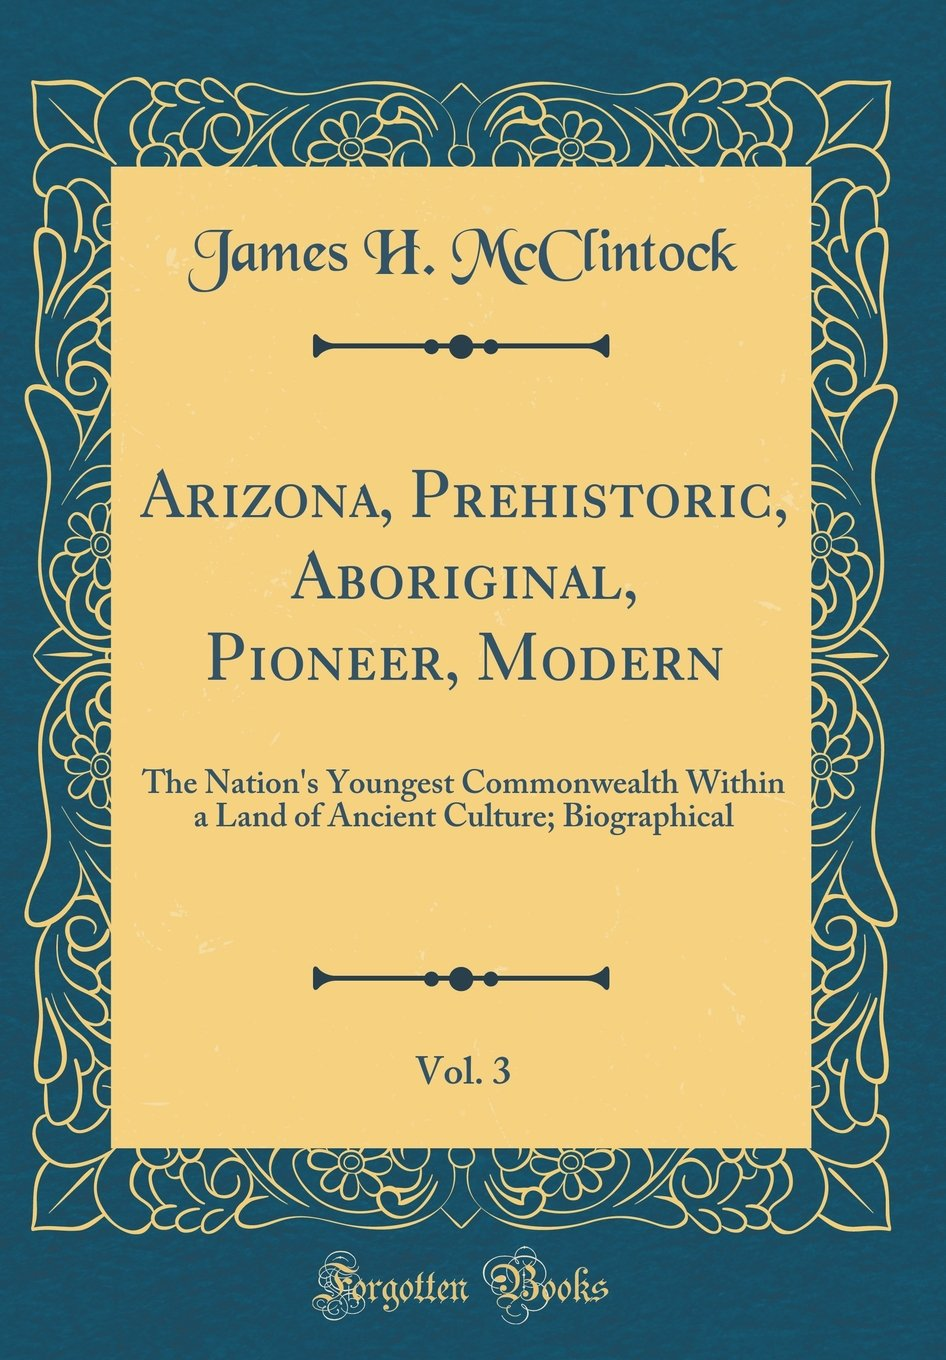 Arizona, Prehistoric, Aboriginal, Pioneer, Modern, Vol. 3: The Nation's Youngest Commonwealth Within a Land of Ancient Culture; Biographical (Classic Reprint) ebook